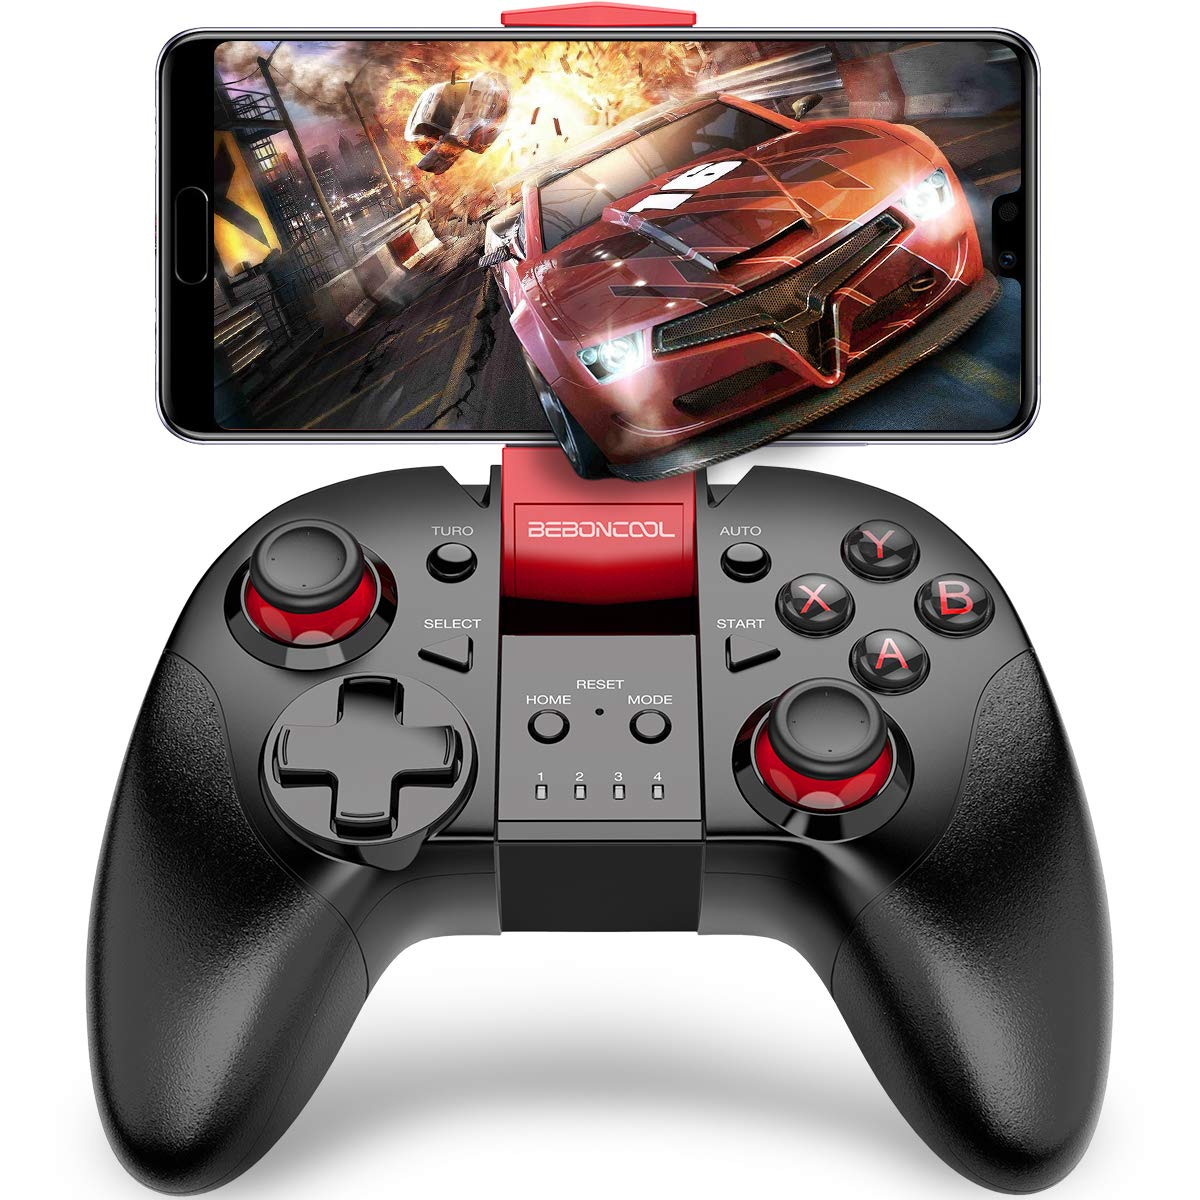 BEBONCOOL Gamepad Remote for Android Phone//Tablet//Samsung Gear VR//Emulator Gear VR Gamepad Controller Compatible with Bluetooth Android Wireless Game Controller